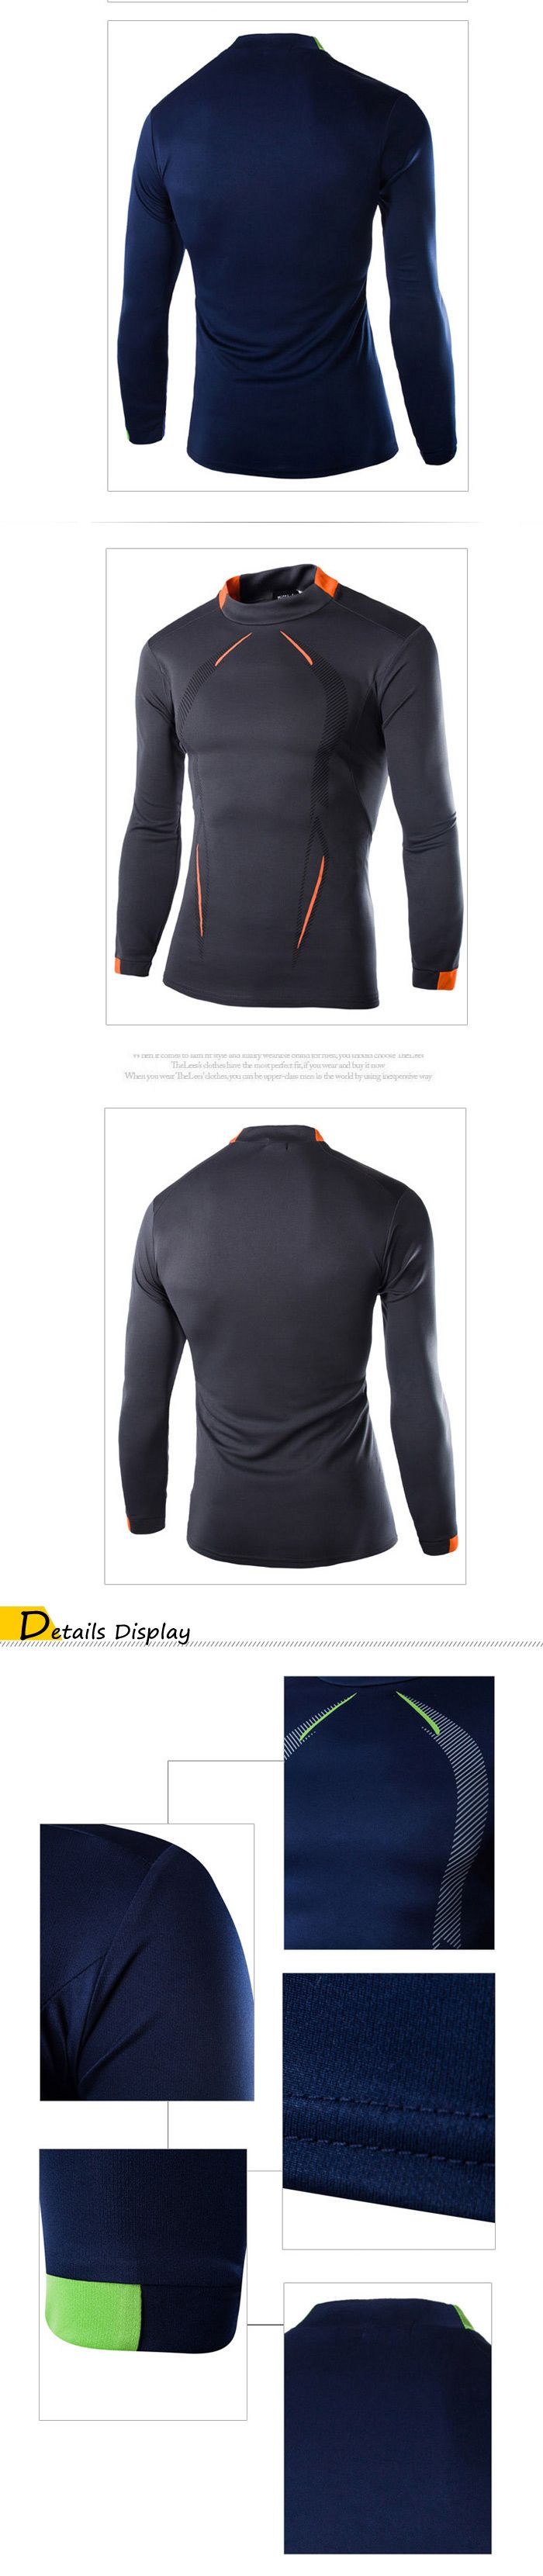 Men Printed Long Sleeve Tight Fitness T Shirt